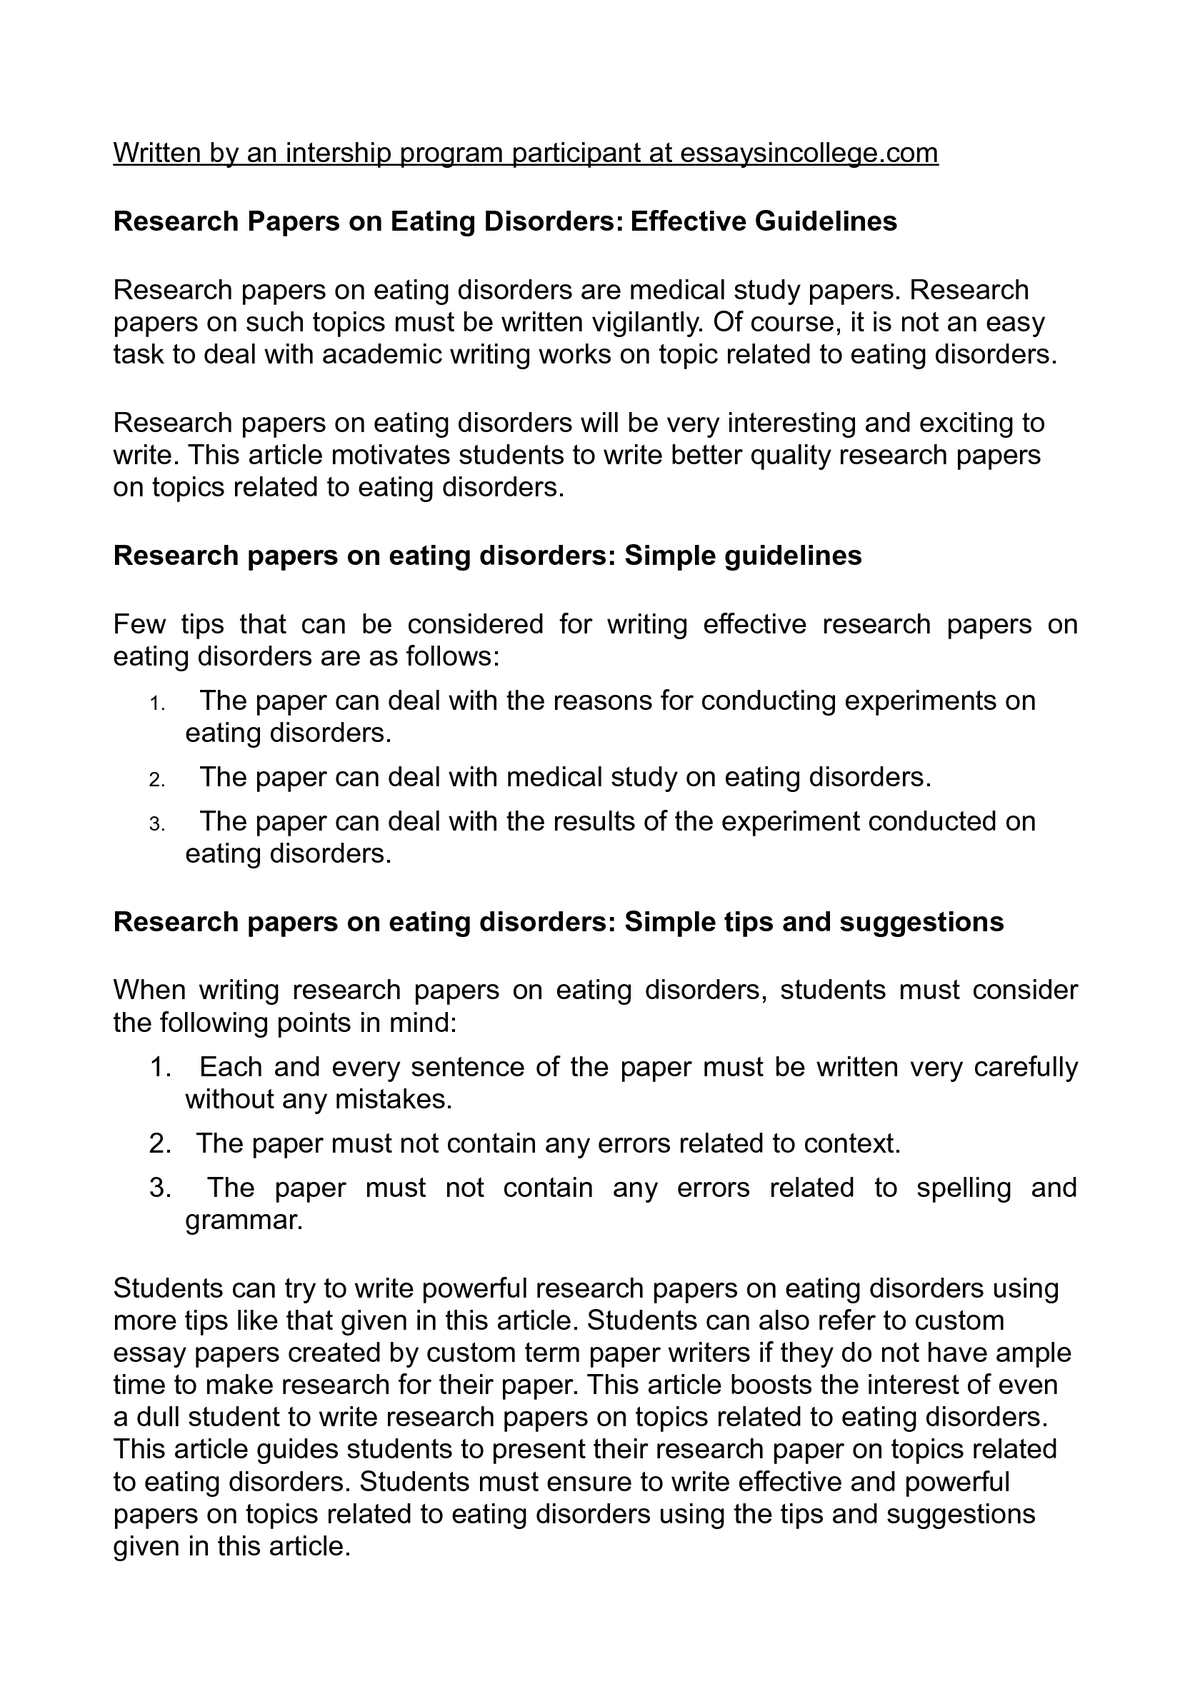 018 Research Paper On Eating Disorders Wonderful Topics Articles And The Media Full